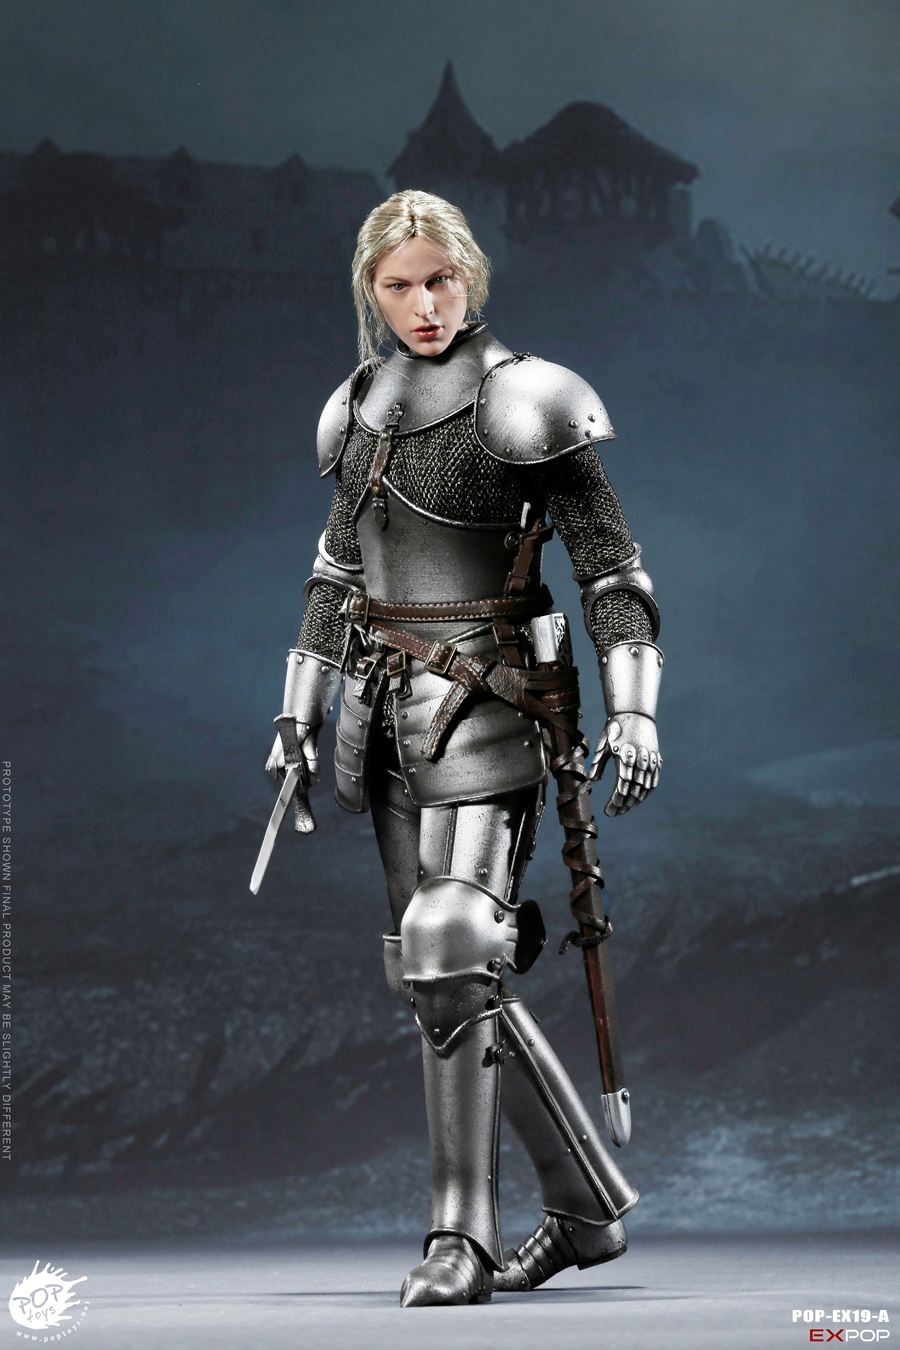 NEW PRODUCT: POPTOYS New Products: 1/6 St. Knights - Assault Edition & Triumph Edition & Iron Armor (POP-EX19 ABC) 248